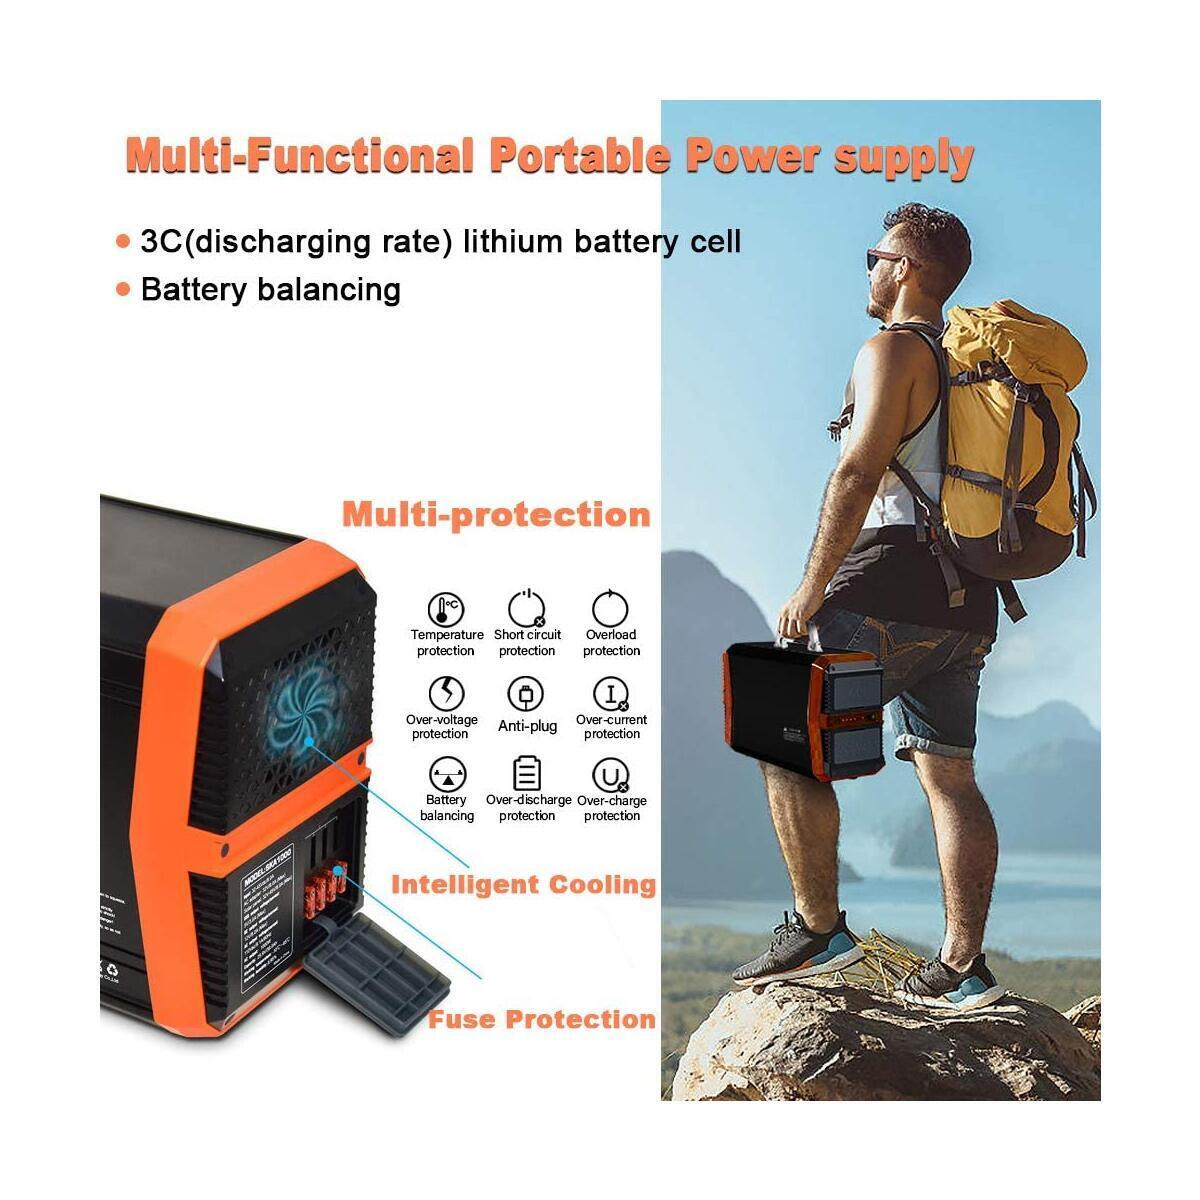 SUNGZU 1000 Watt Portable Power Station Solar Generator 1000W 1010Wh for Camping Home Outdoors CPAP Lithium Battery Solar Powered Generator with 2 110V AC Outlet 2 DC 4 USB